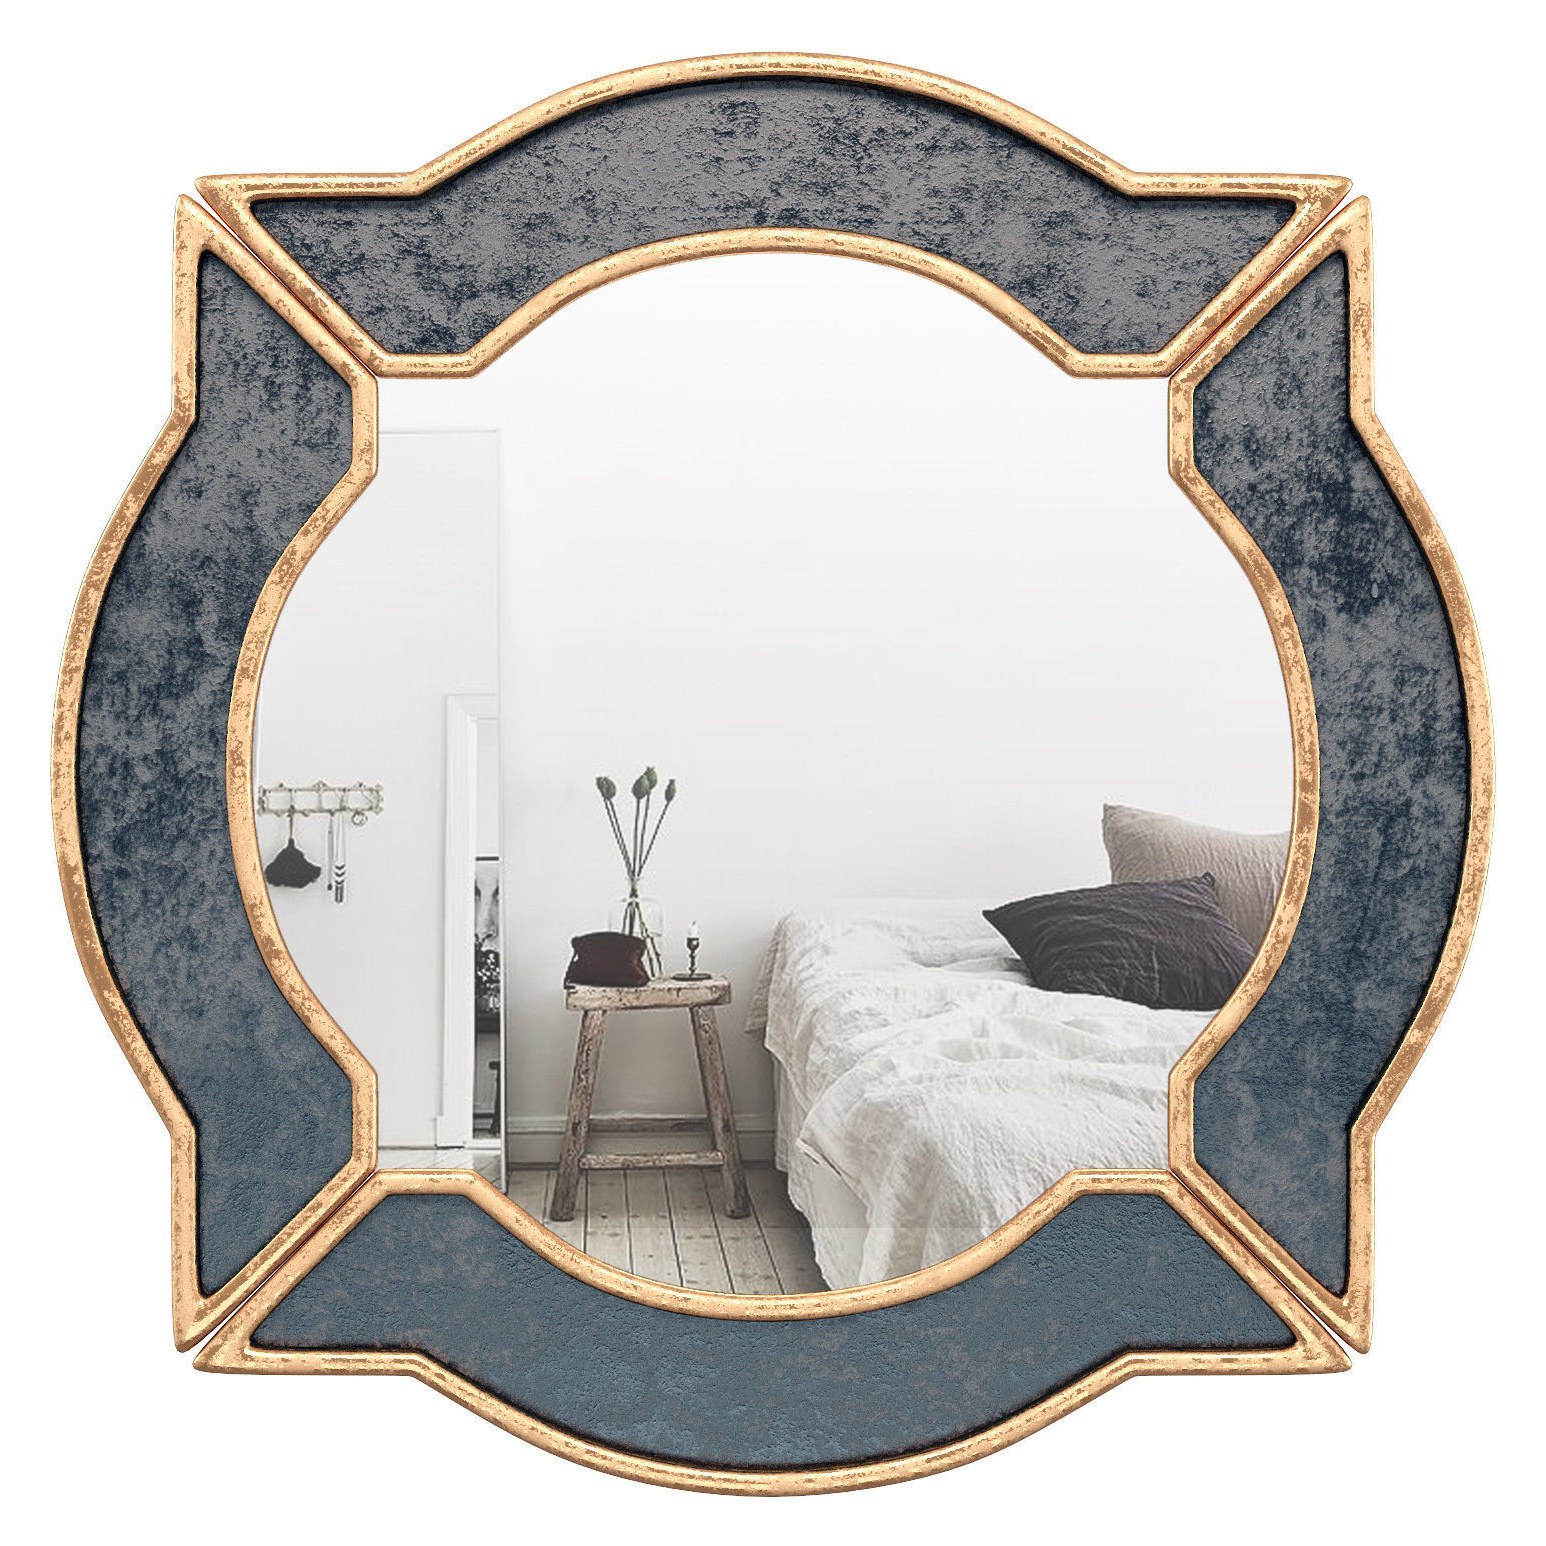 Black Gold Resin Wall Mirror Wrlo (View 16 of 20)